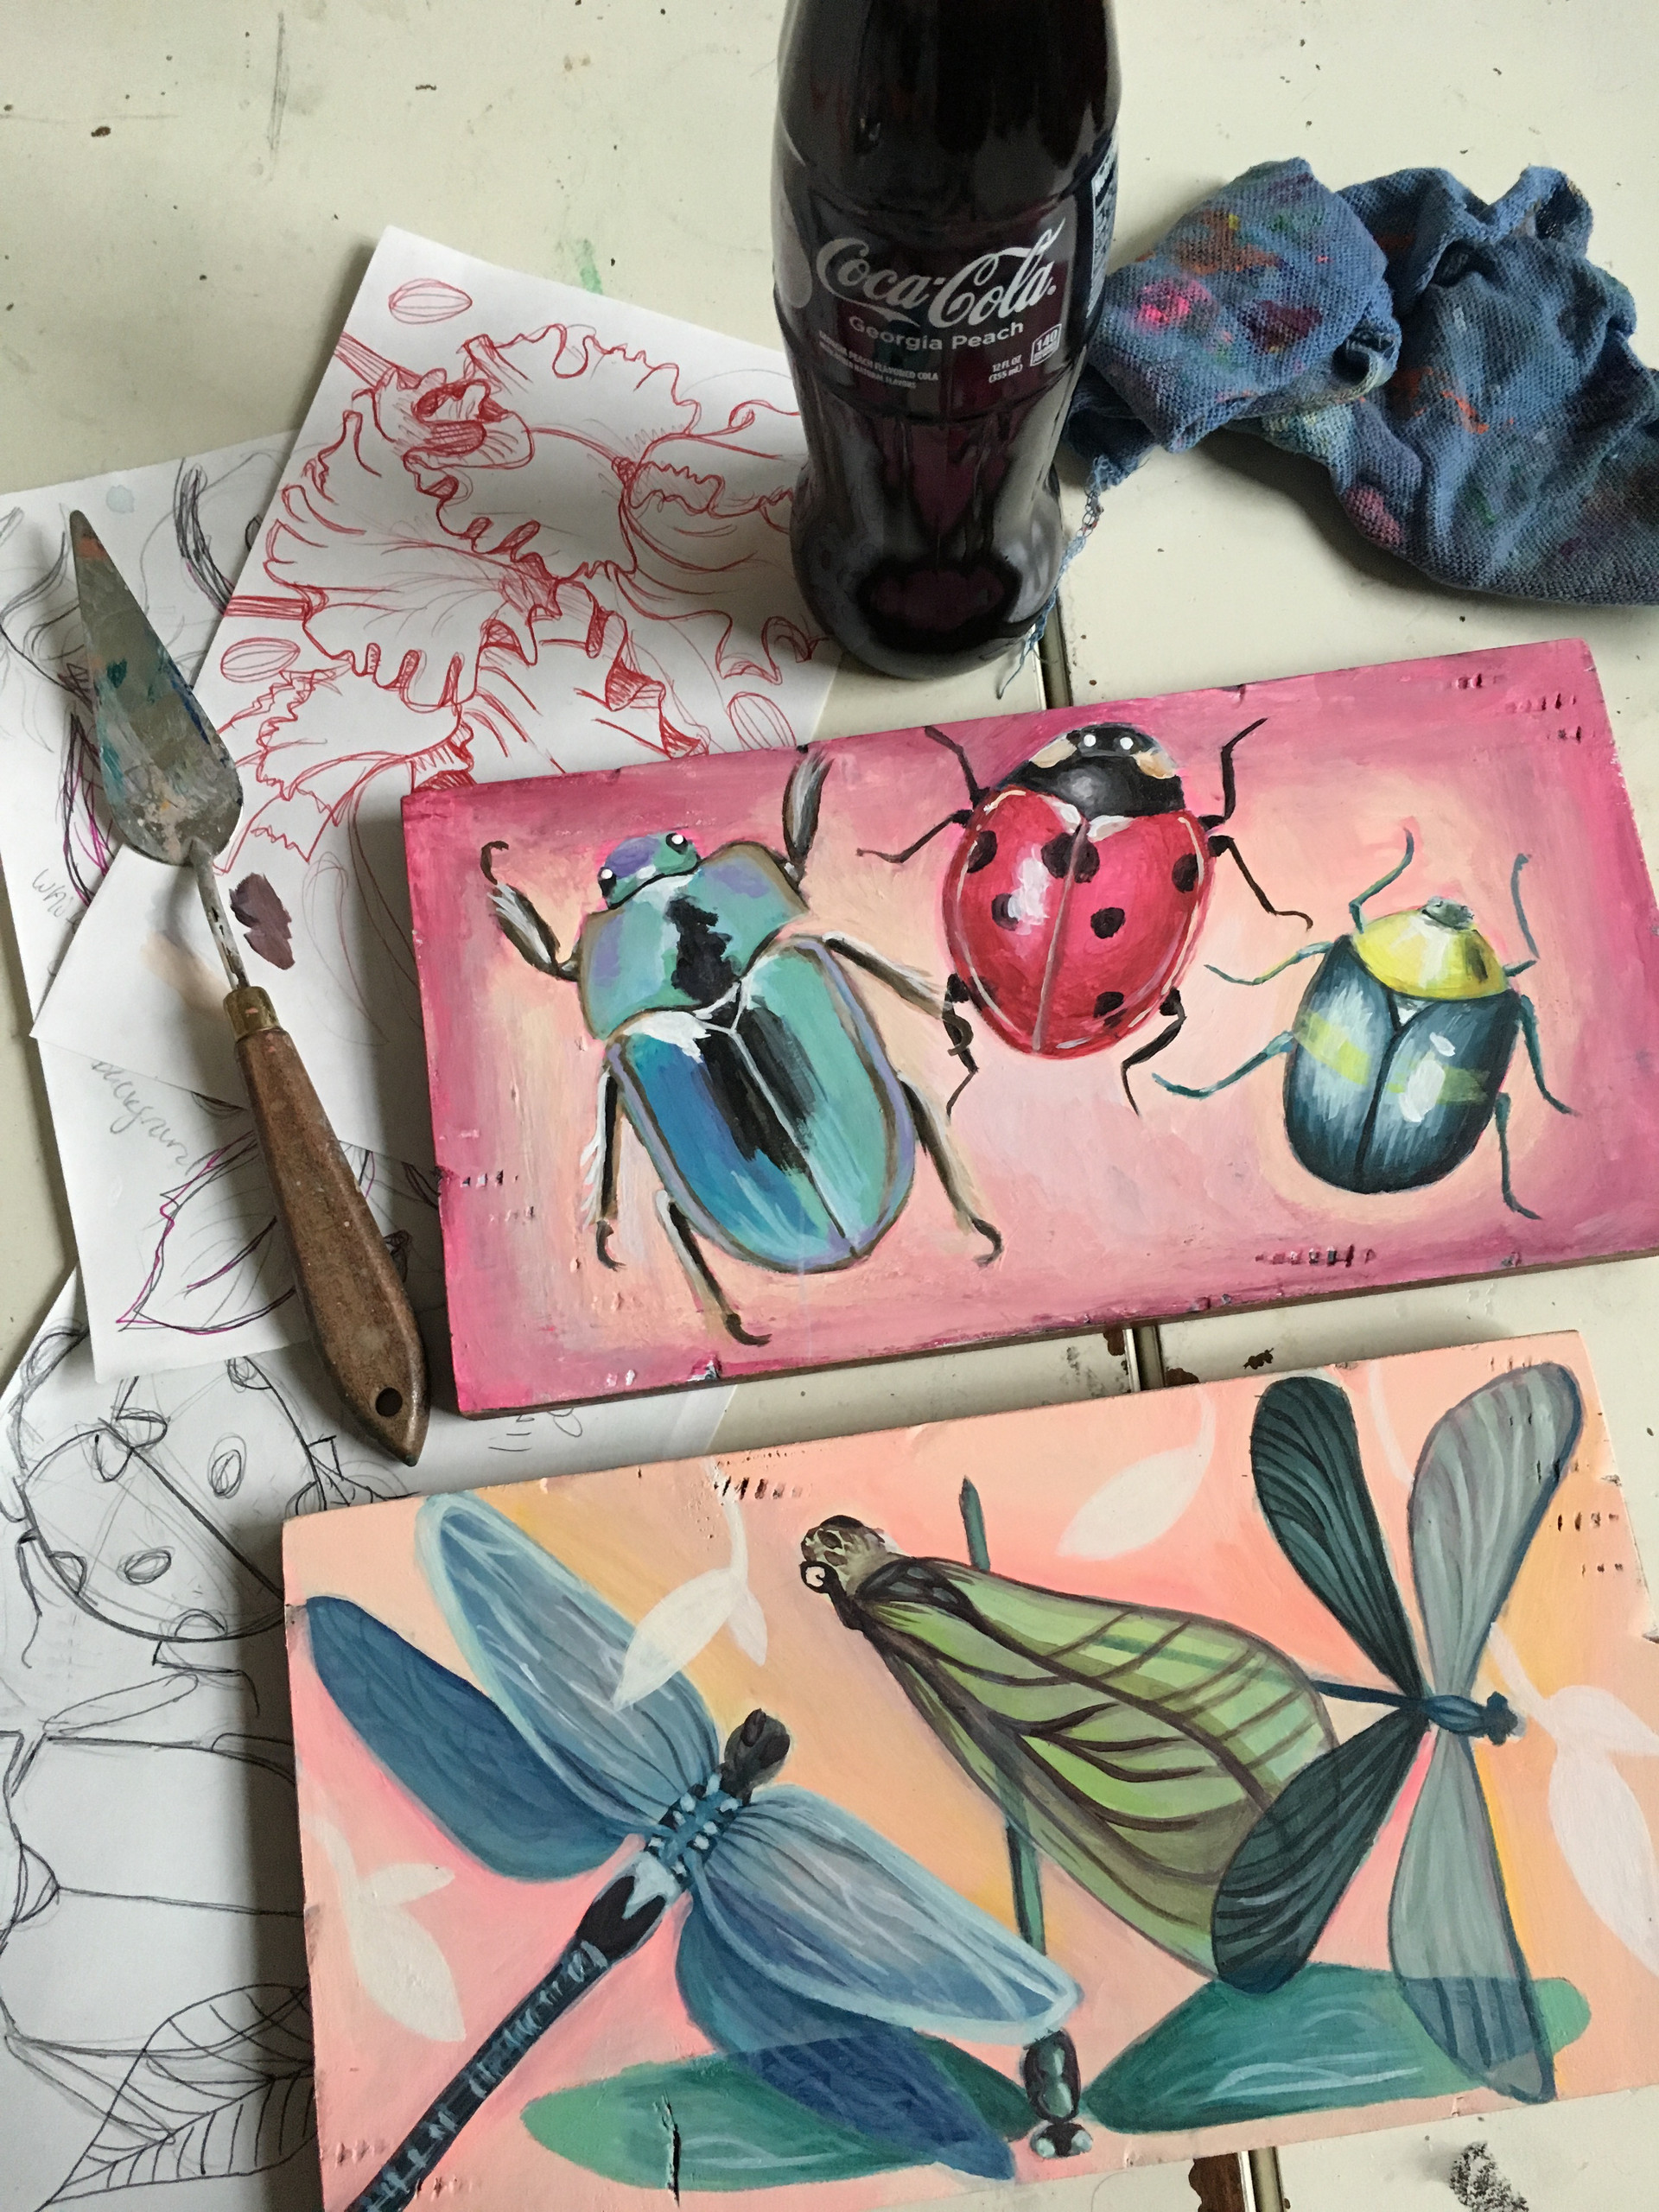 bug paintings on panels with coke